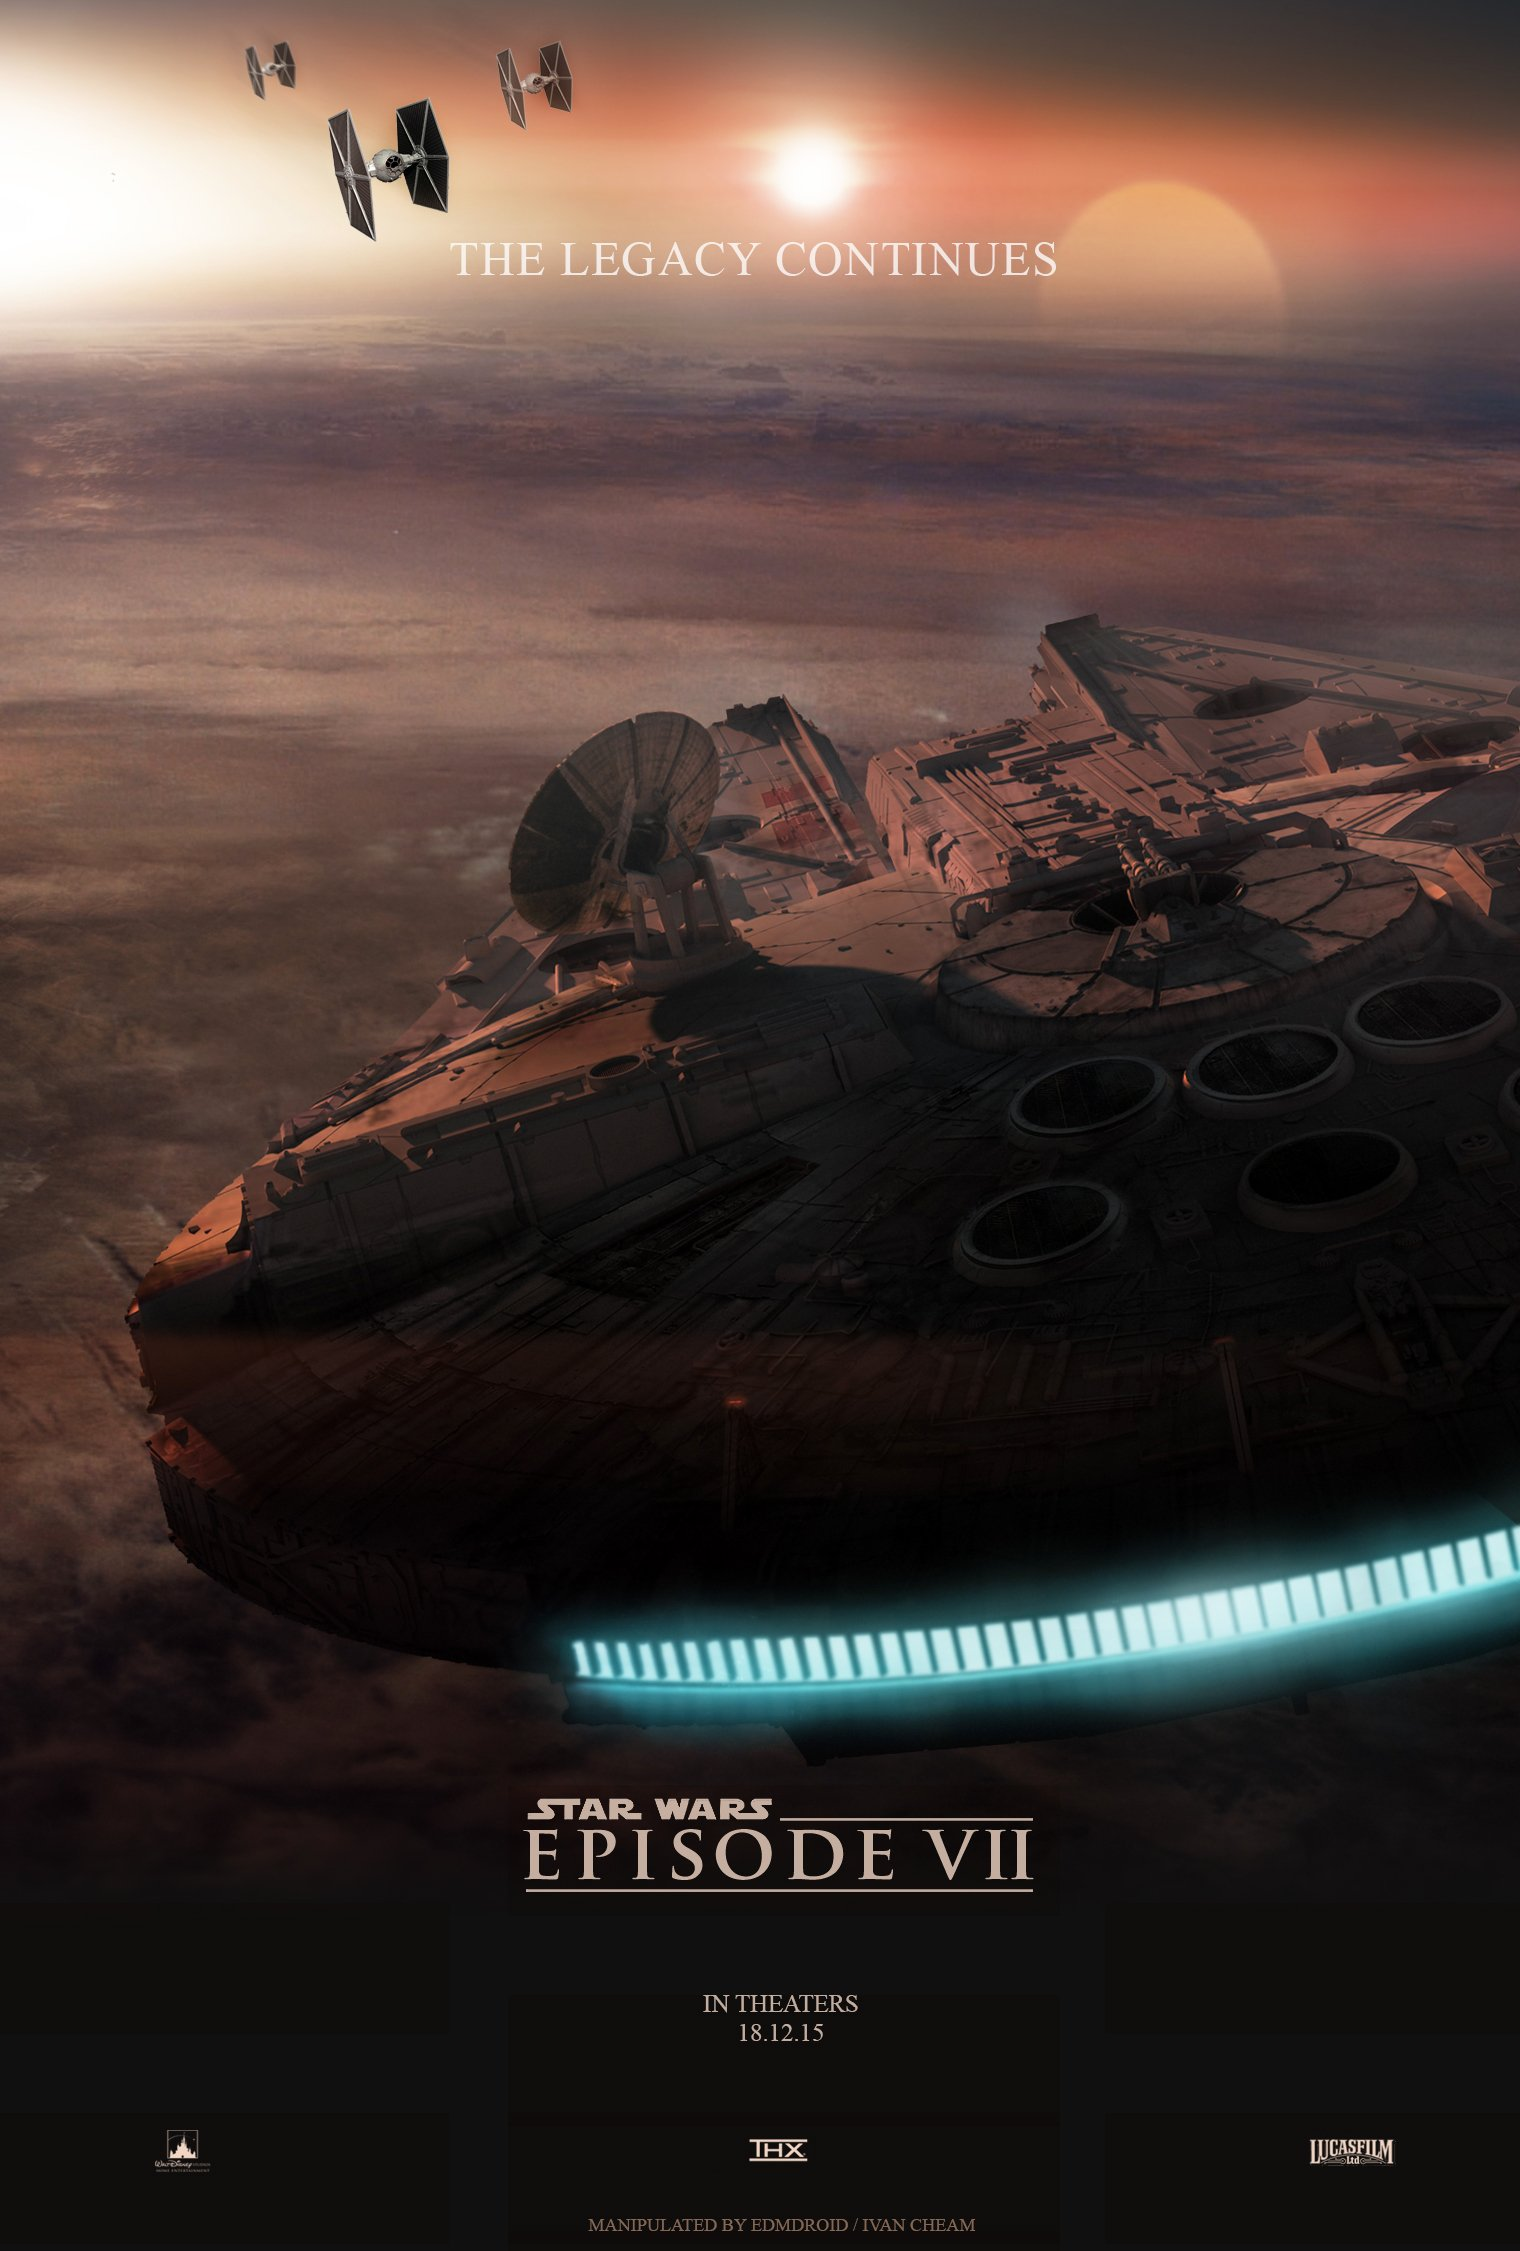 Star Wars Episode 7 Millenium Falcon Poster Fan Made by Ivan Cheam